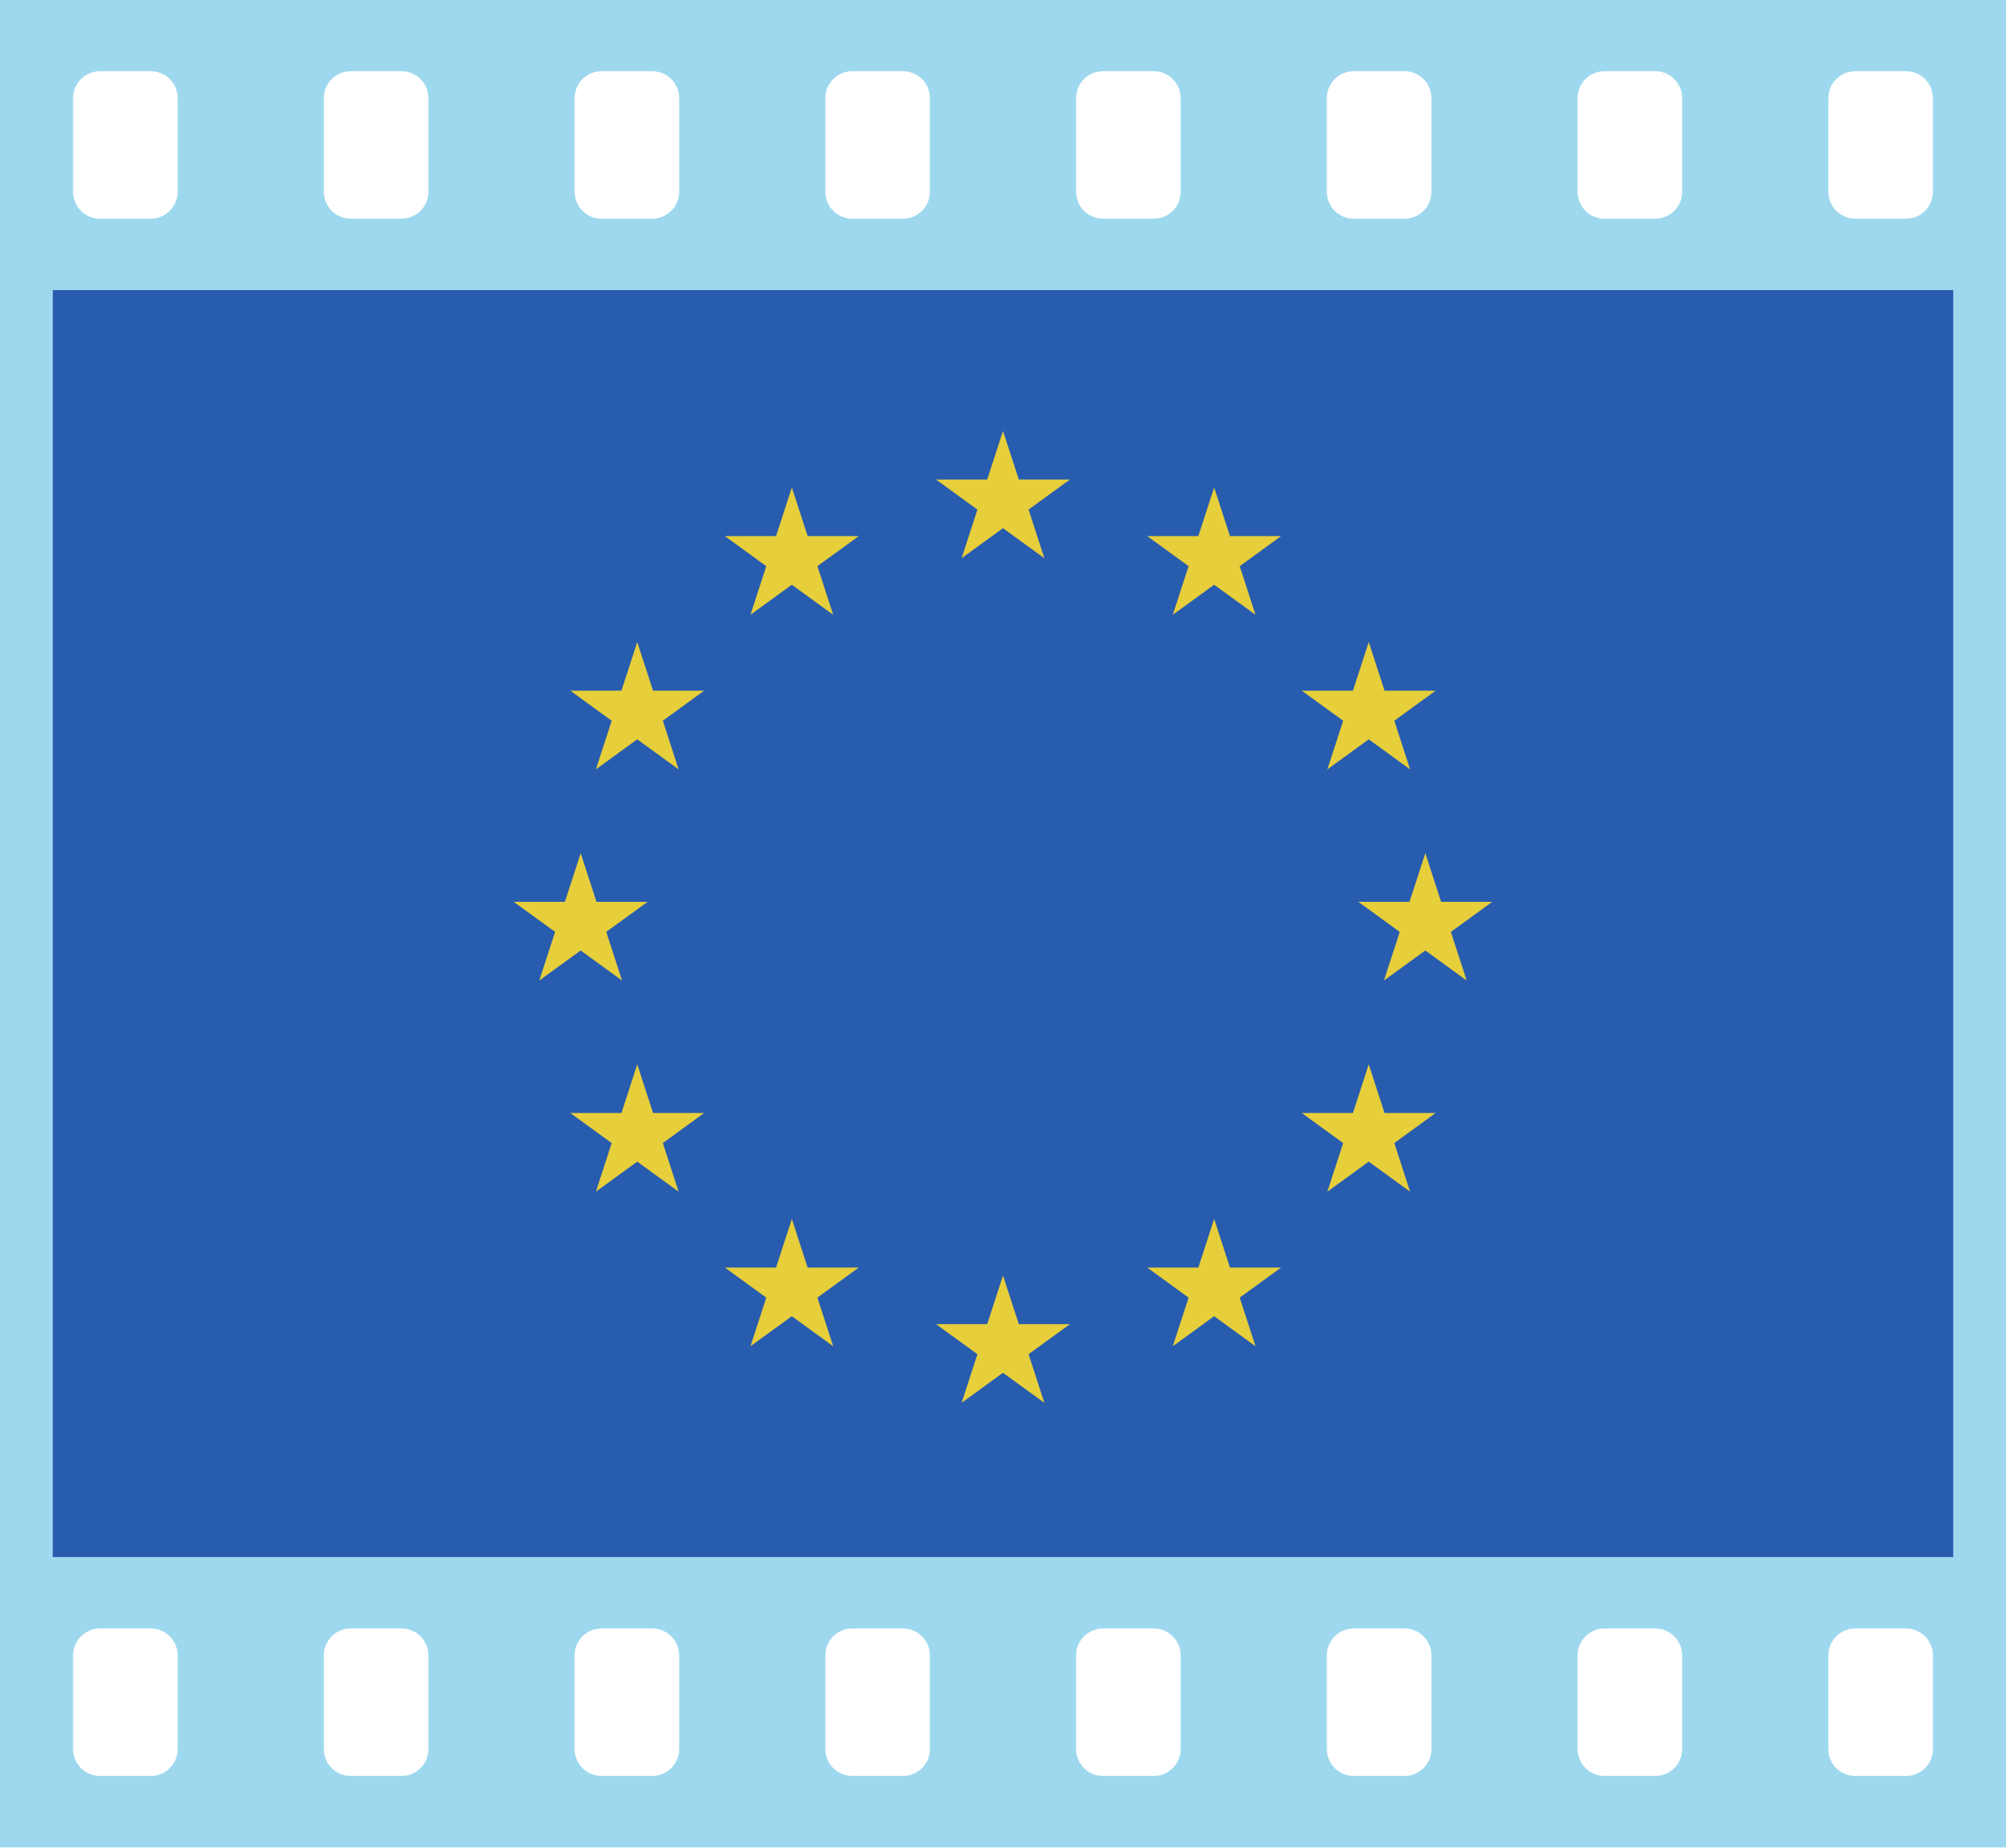 Of in a mm. Europe clipart flag europe